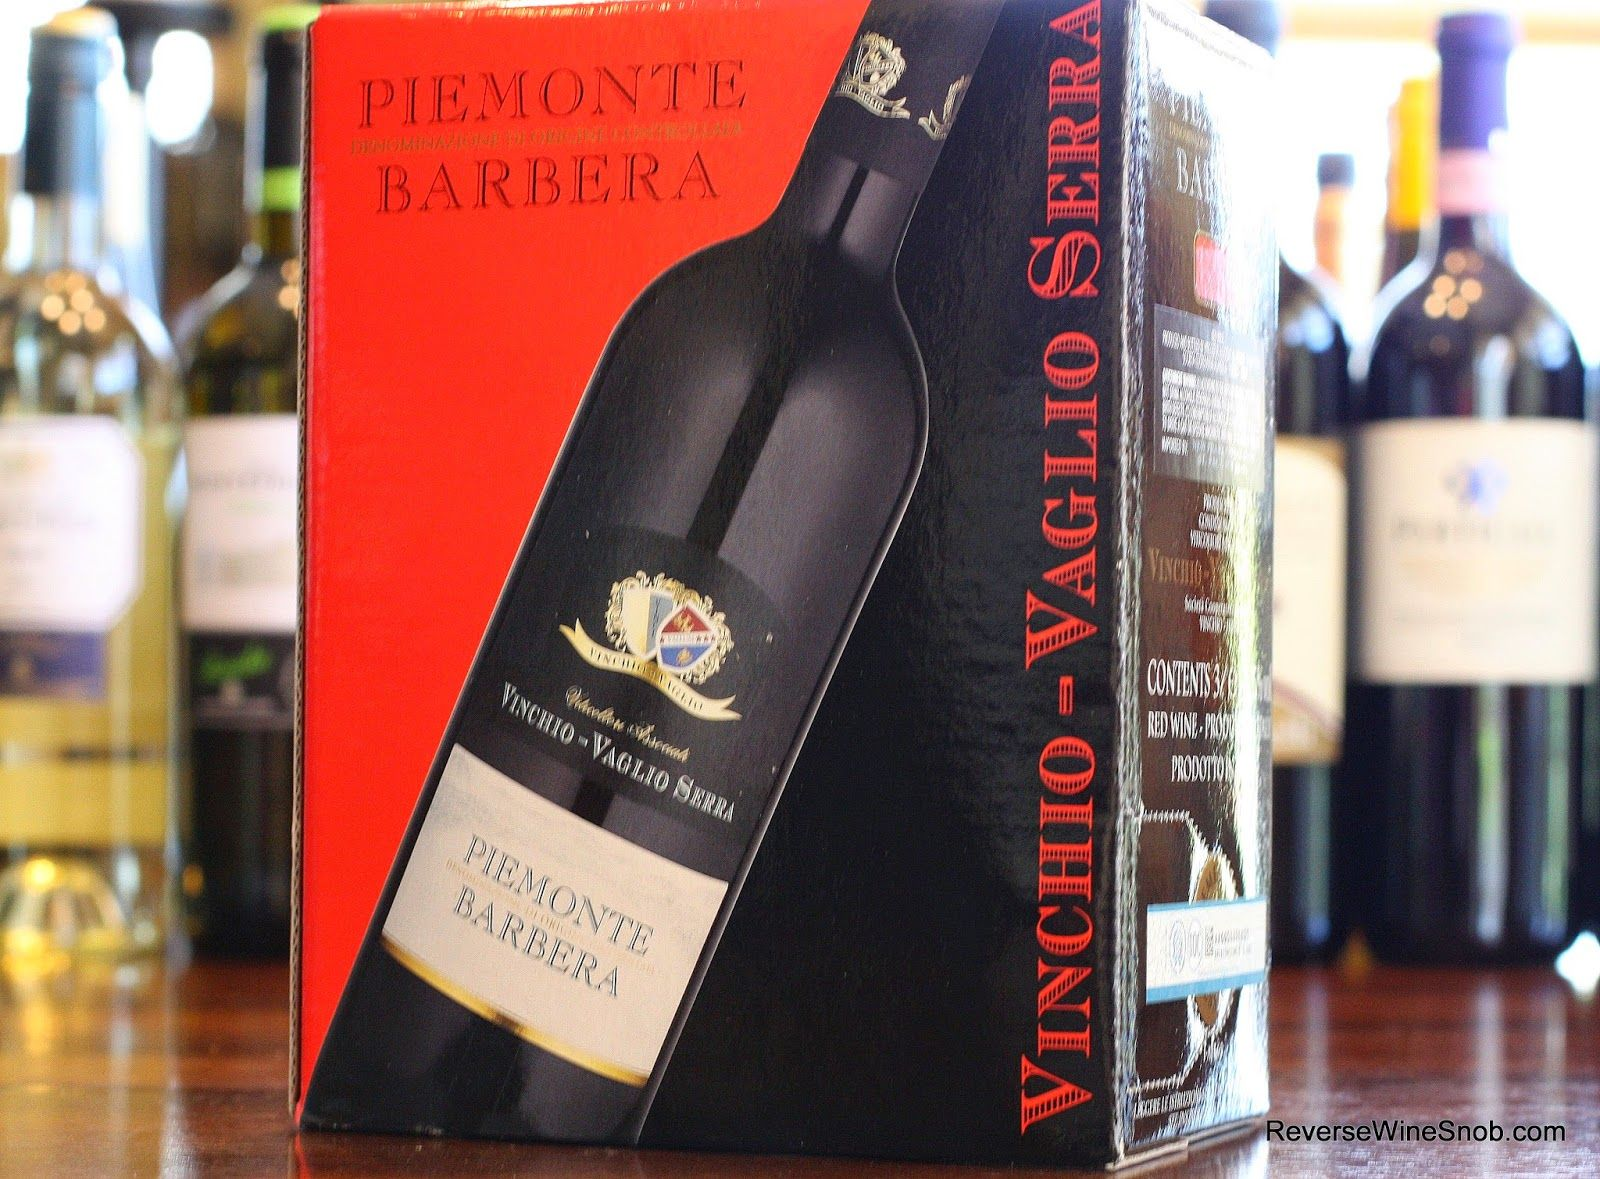 The Reverse Wine Snob The Best Box Wines Vinchio Vaglio Serra Piemonte Barbera 2012 A True Bulk Buy As Low As 16 For A 3l Box Ht Wine Snob Wine Wine Box